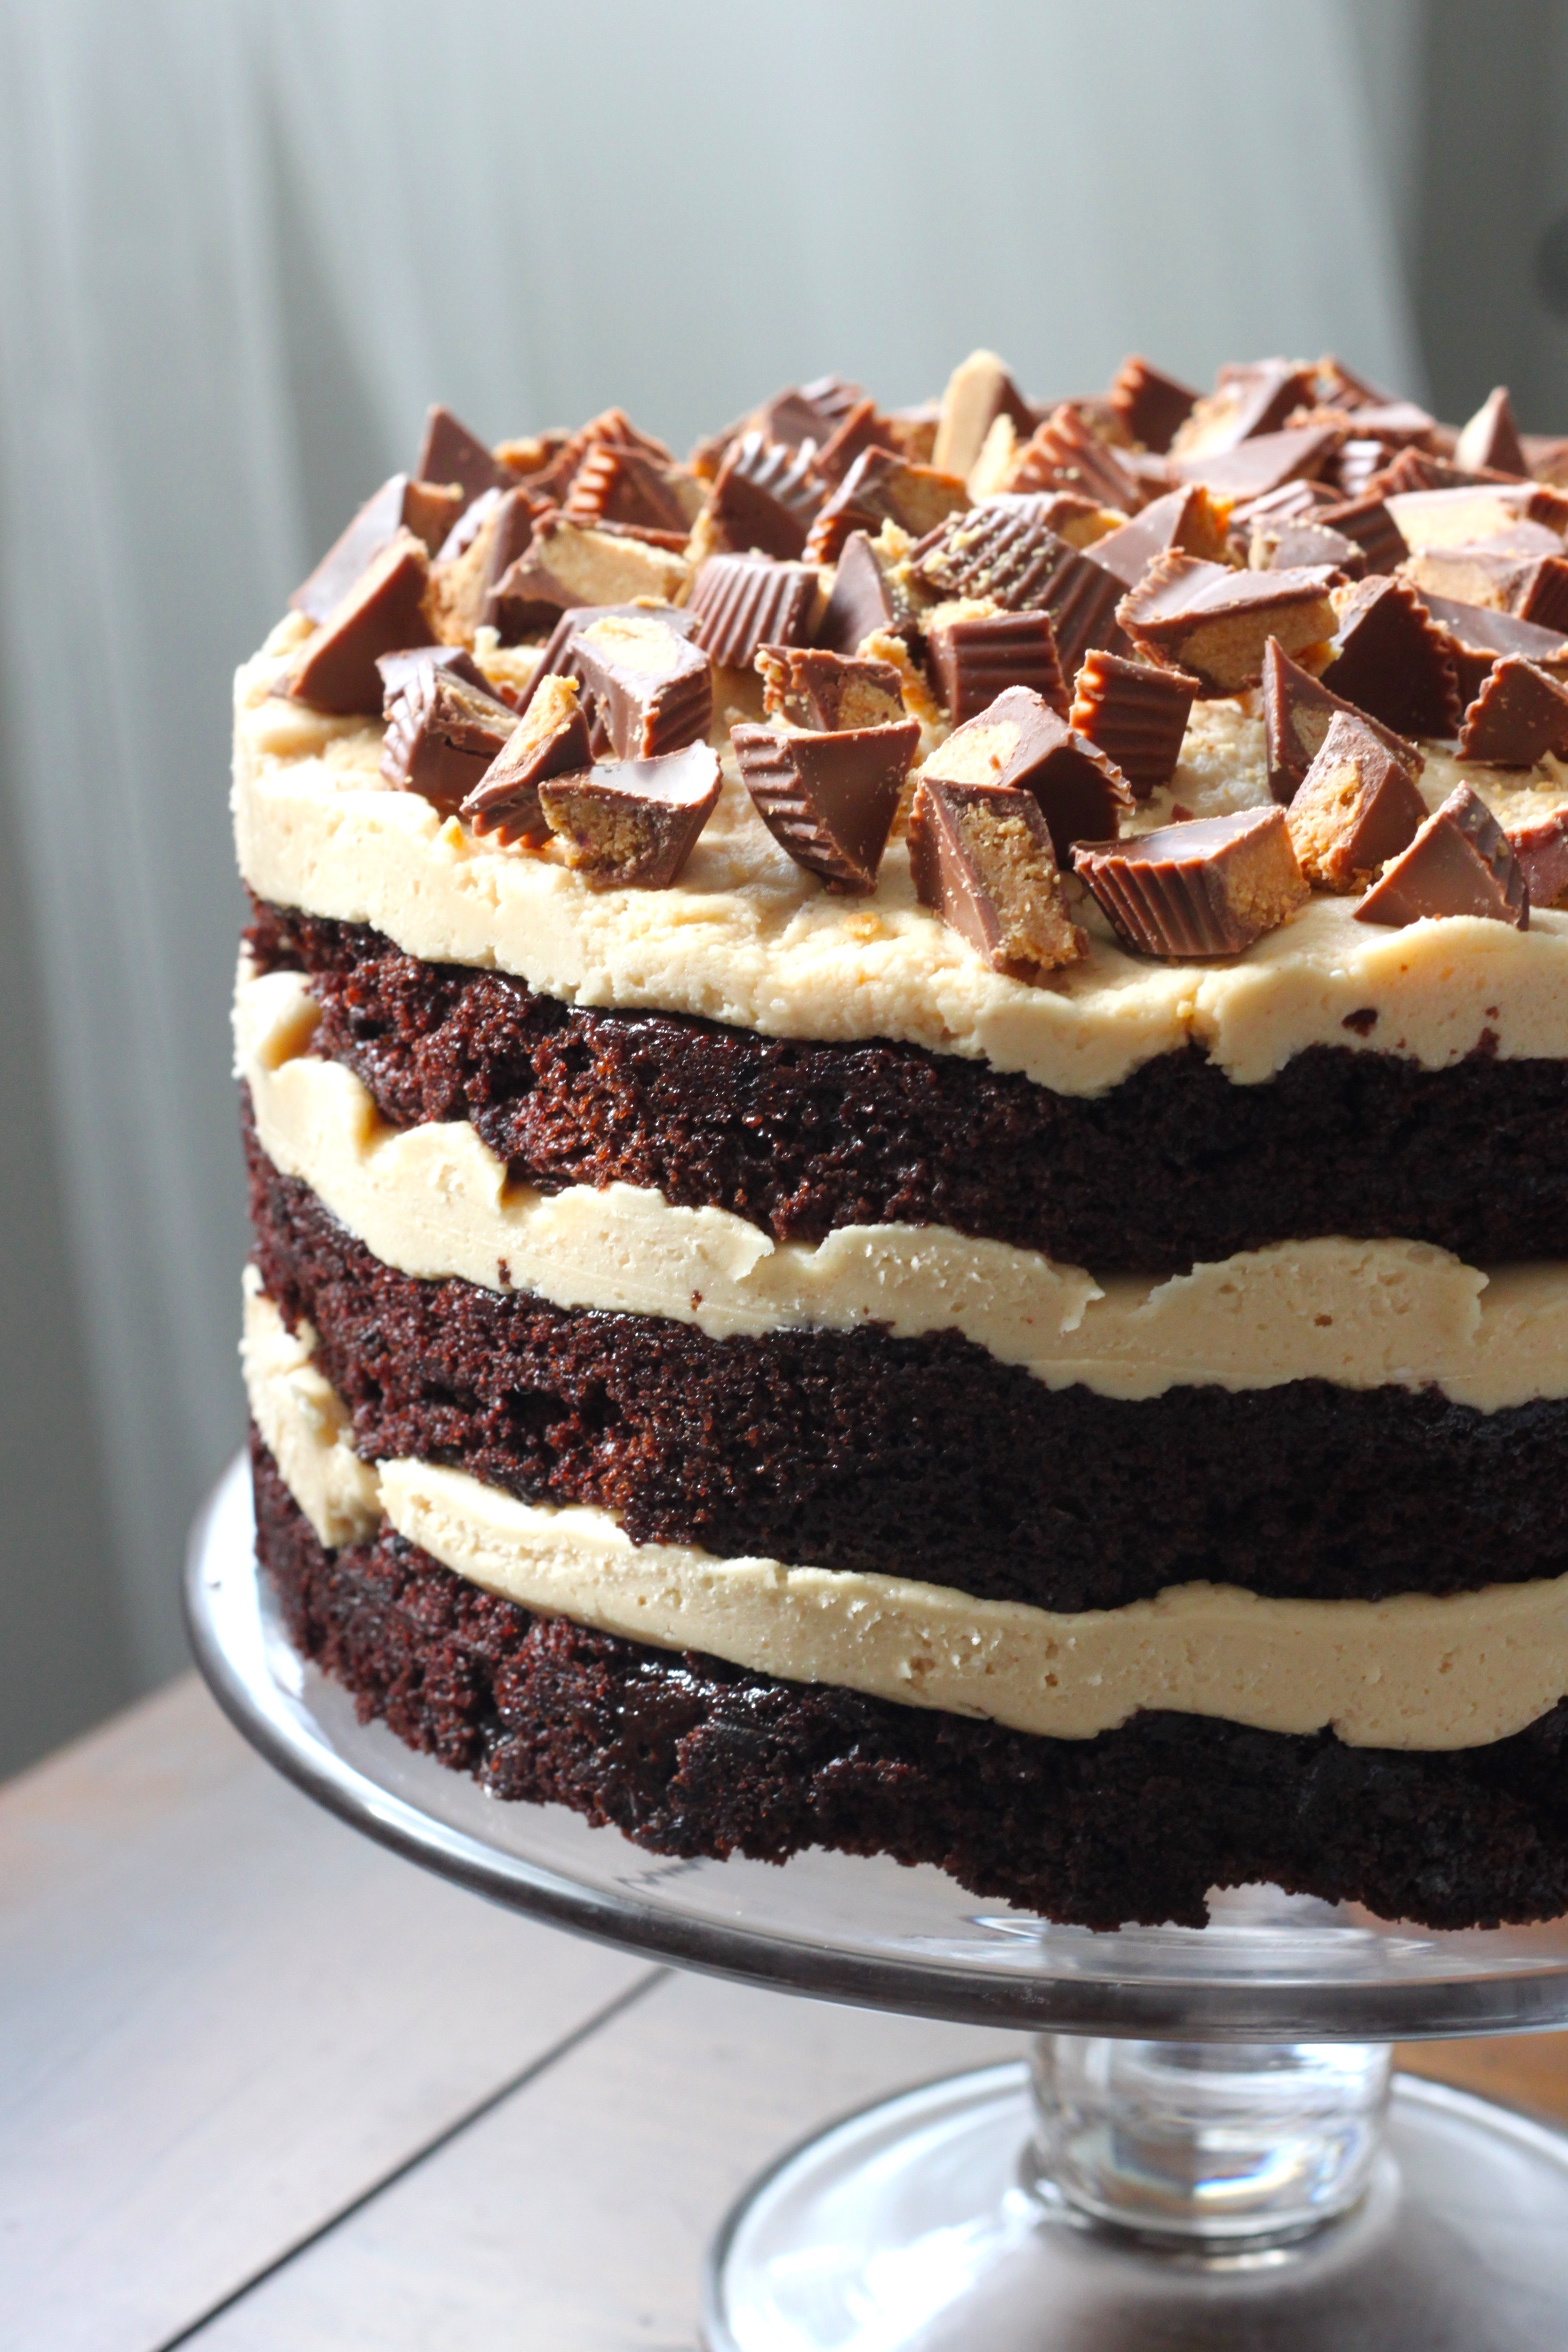 Johnny's Chocolate Peanut Butter Layer Cake